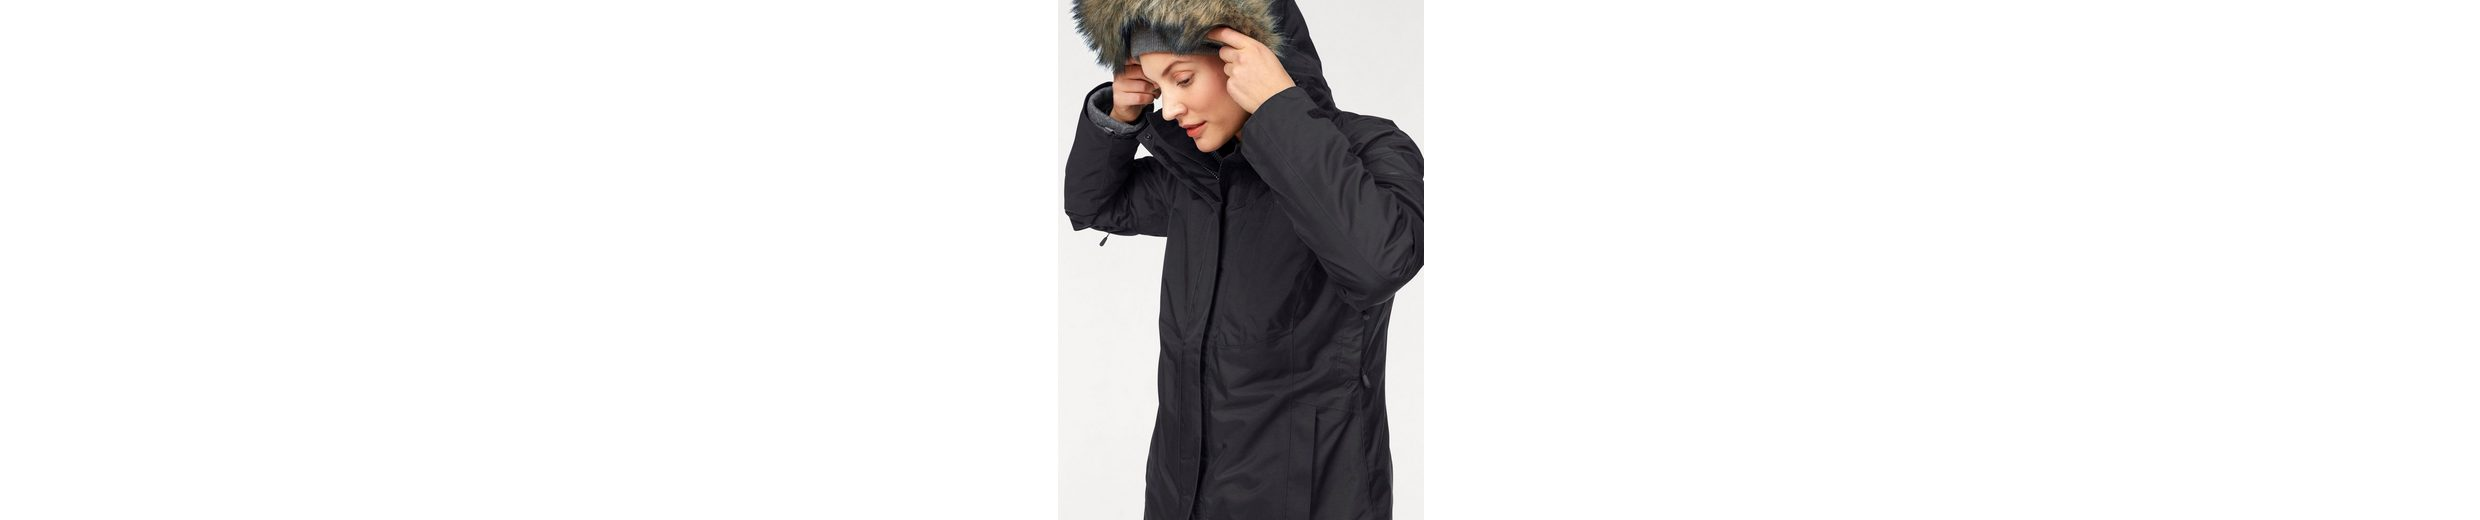 Jack Wolfskin 3-in-1-Funktionsjacke ARCTIC OCEAN (Set, 2 tlg), aus der 3in1-Regular-System-Serie